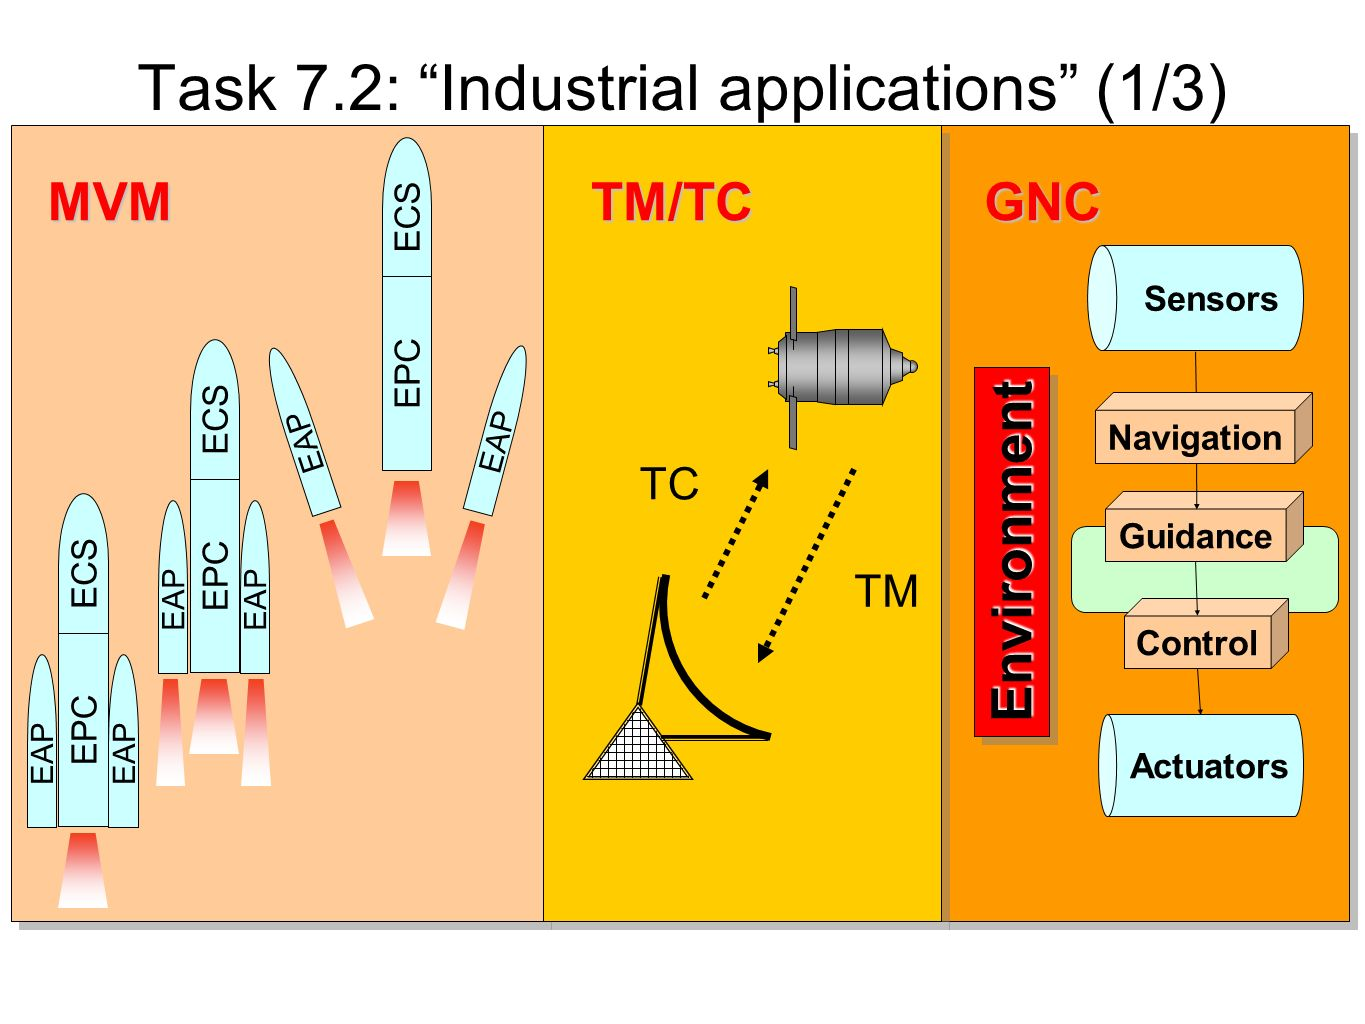 Task 7.2: Industrial applications (1/3)